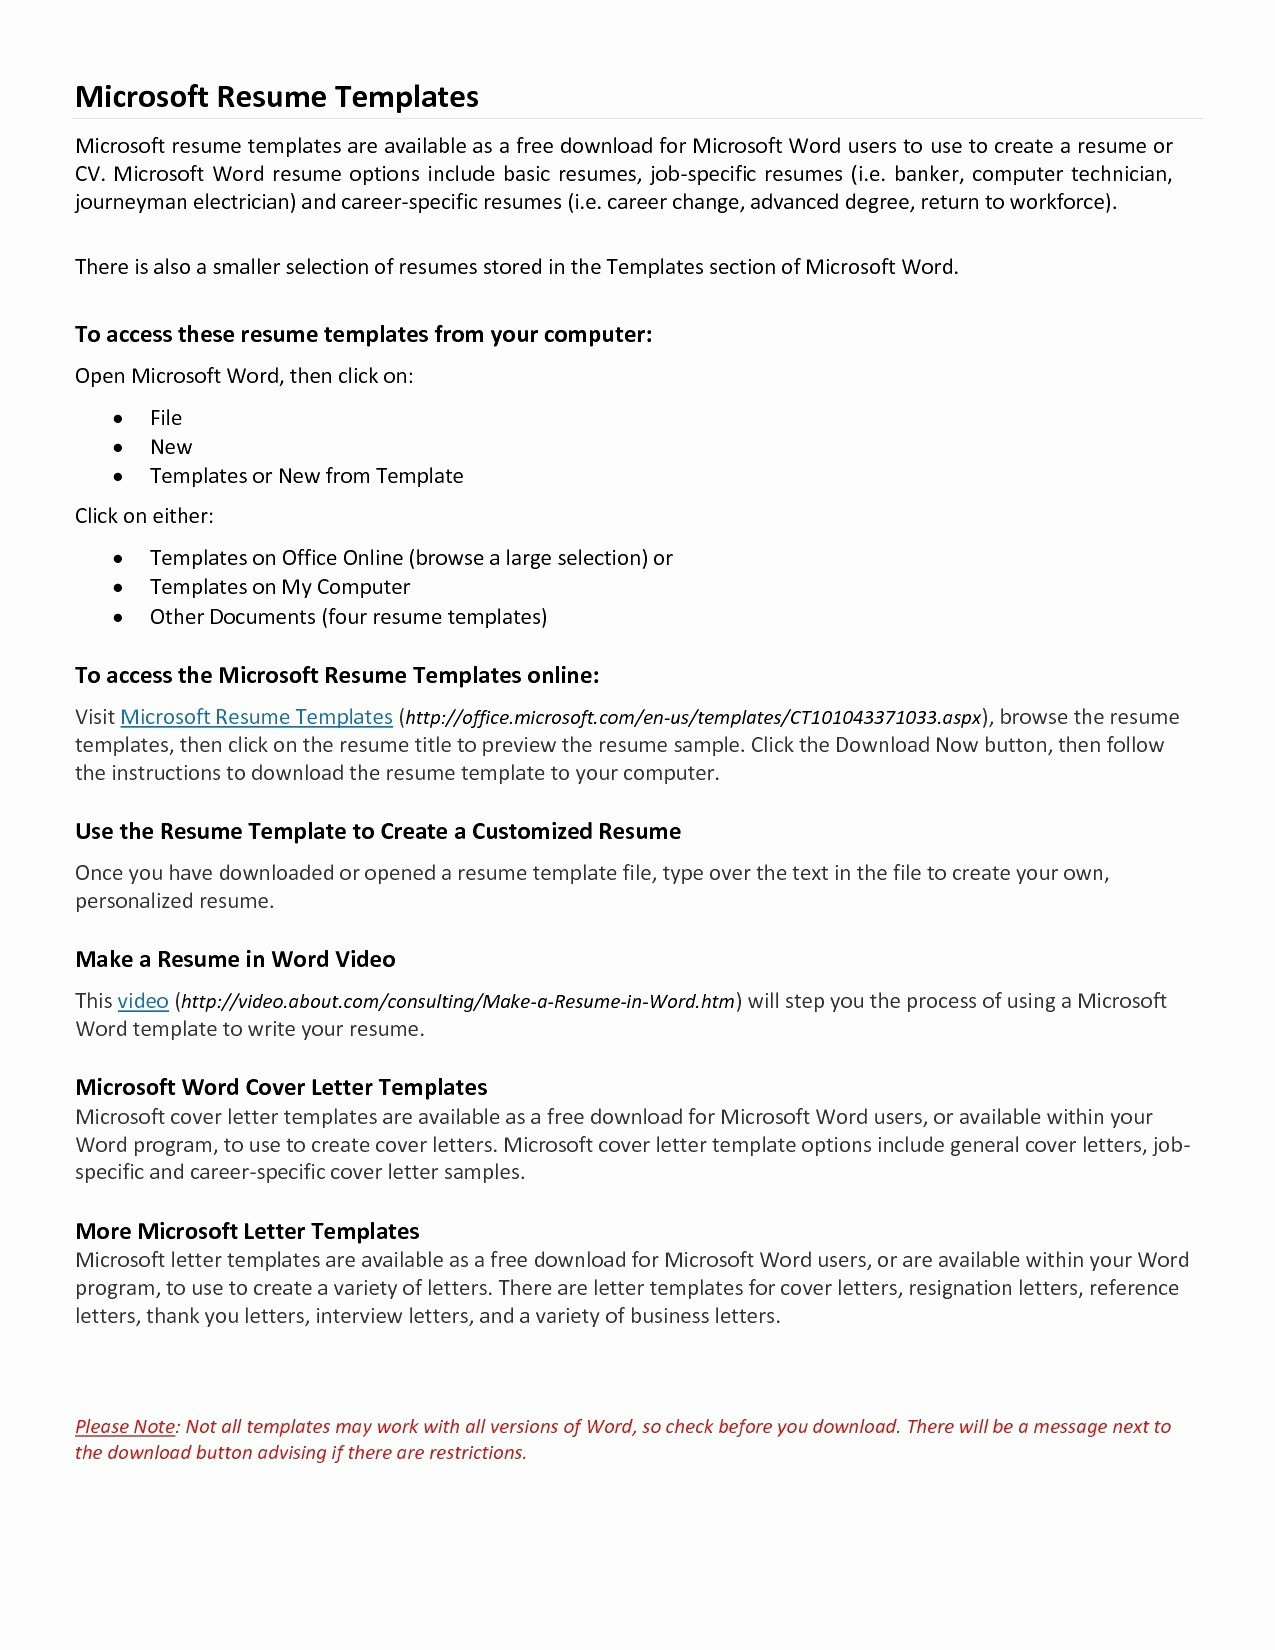 Free Printable Cover Letter Templates Beautiful Download Microsoft - Free Printable Cover Letter Templates